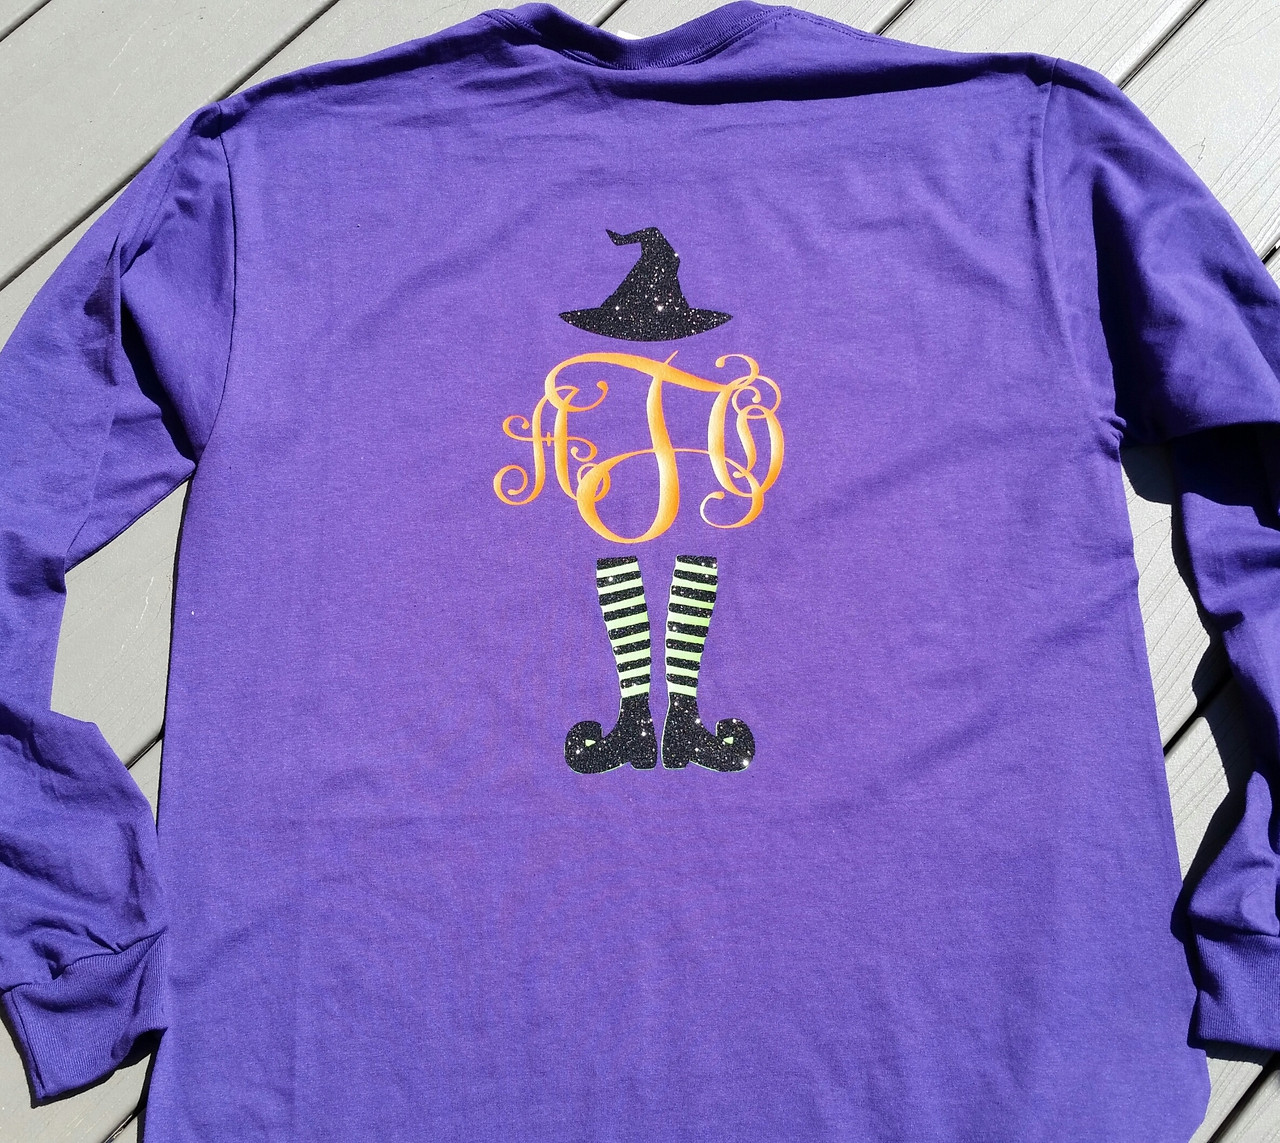 2eb8a7daaeb Halloween Witch Monogrammed Shirt - Trick or Treat Shirt - Front and Back  Personalization - Tshirt - Long Sleeve Tee - Hoodie - Make it Personal by MM